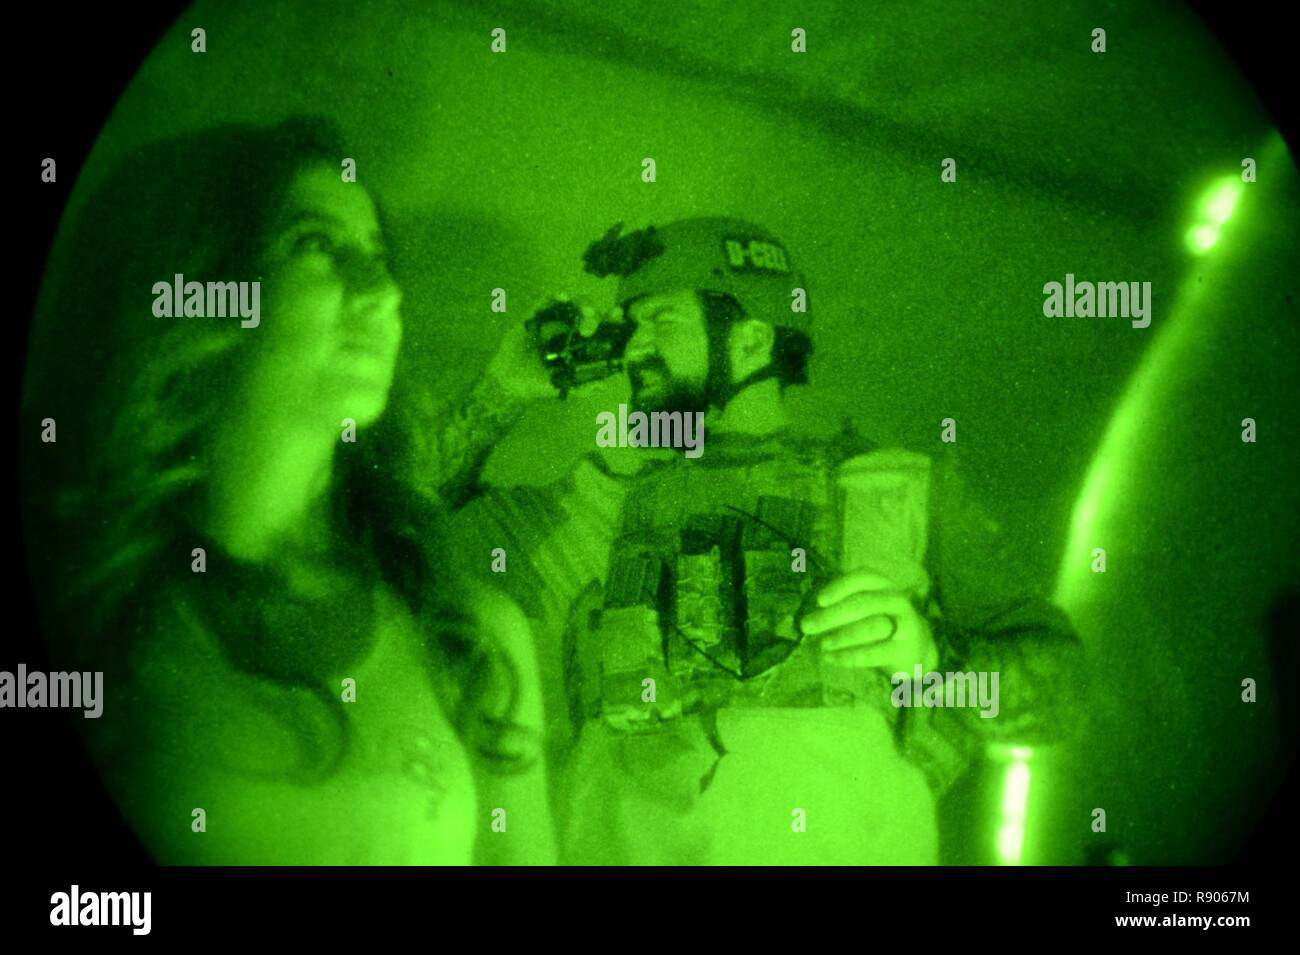 Tampa Bay Buccaneers cheerleader Tessa and offensive guard Evan Smith try out PVS-14 night-vision goggles with U.S. Special Operations Command Deployment Cell personnel during a visit to MacDill Air Force Base in Tampa, Fla., Nov. 7, 2017. The football players and cheerleaders toured USSOCOM and other base facilities to meet with currently serving personnel and to experience a glimpse of military life. Stock Photo